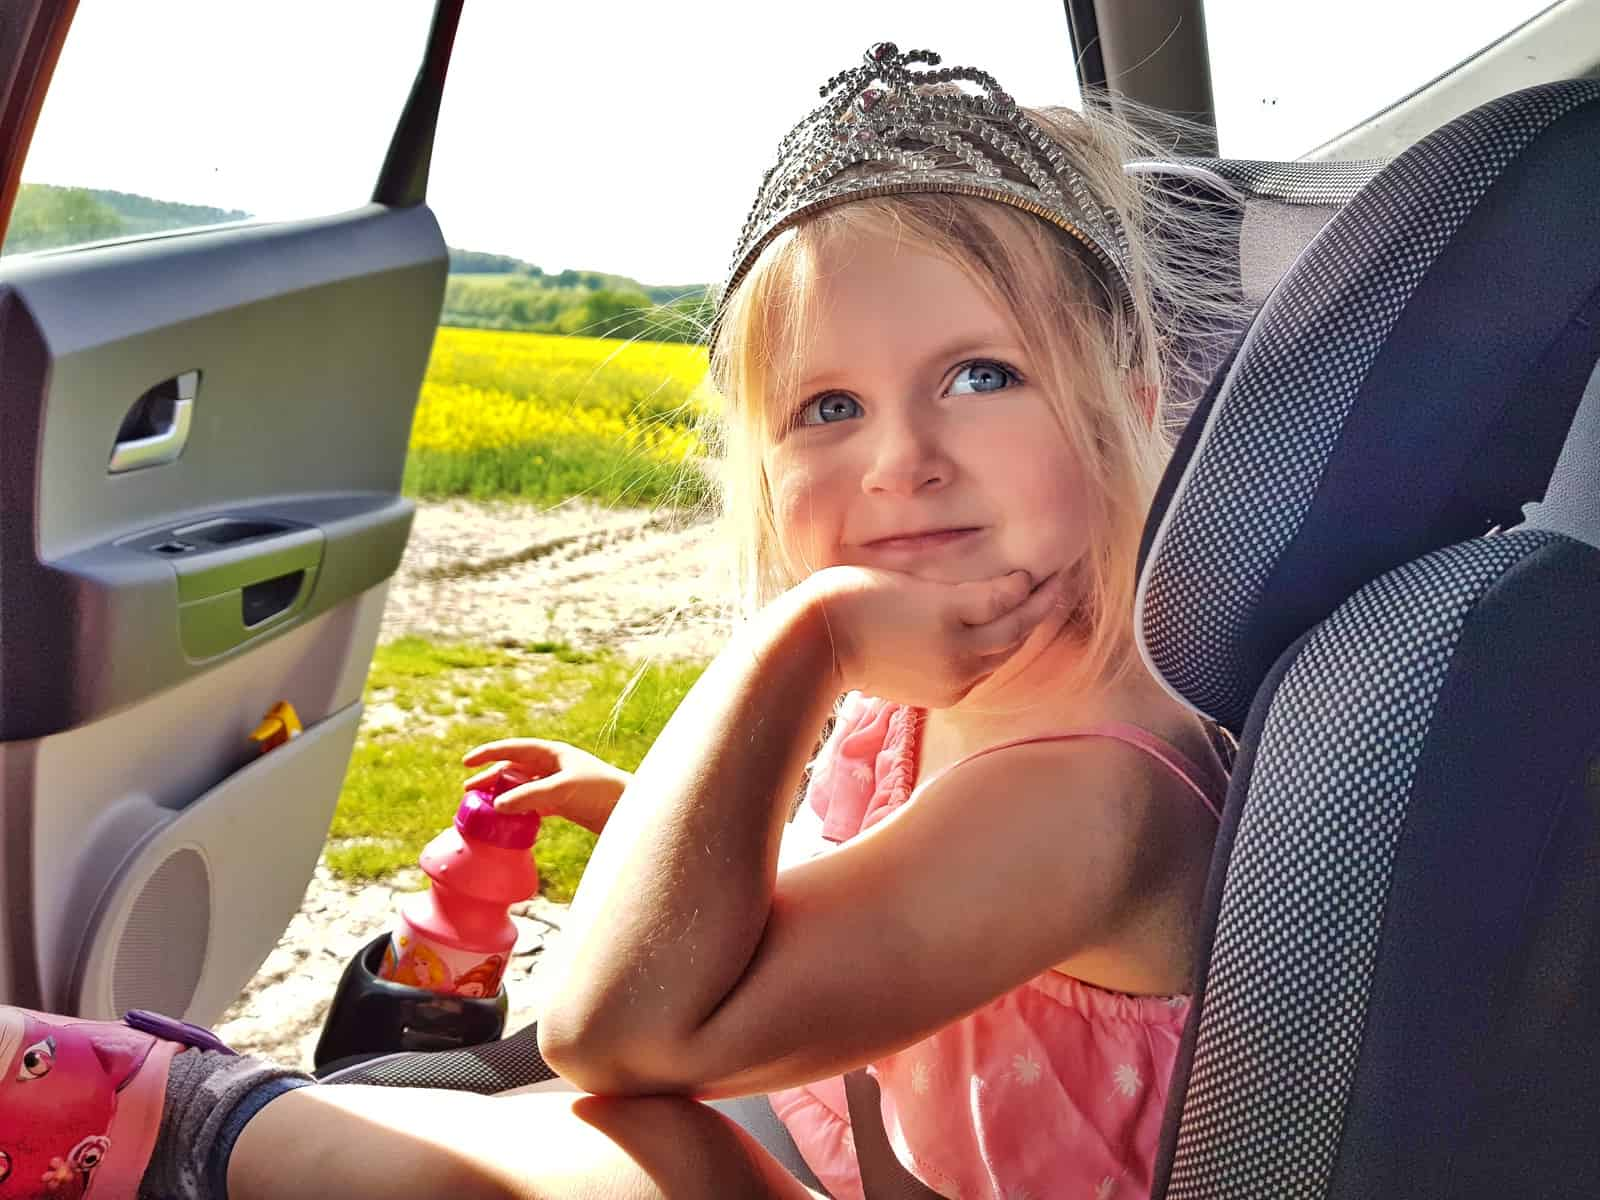 Little girl in pink outfit and tiara sat in car seat with hand on chin, car door open onto a field of oilseed rape